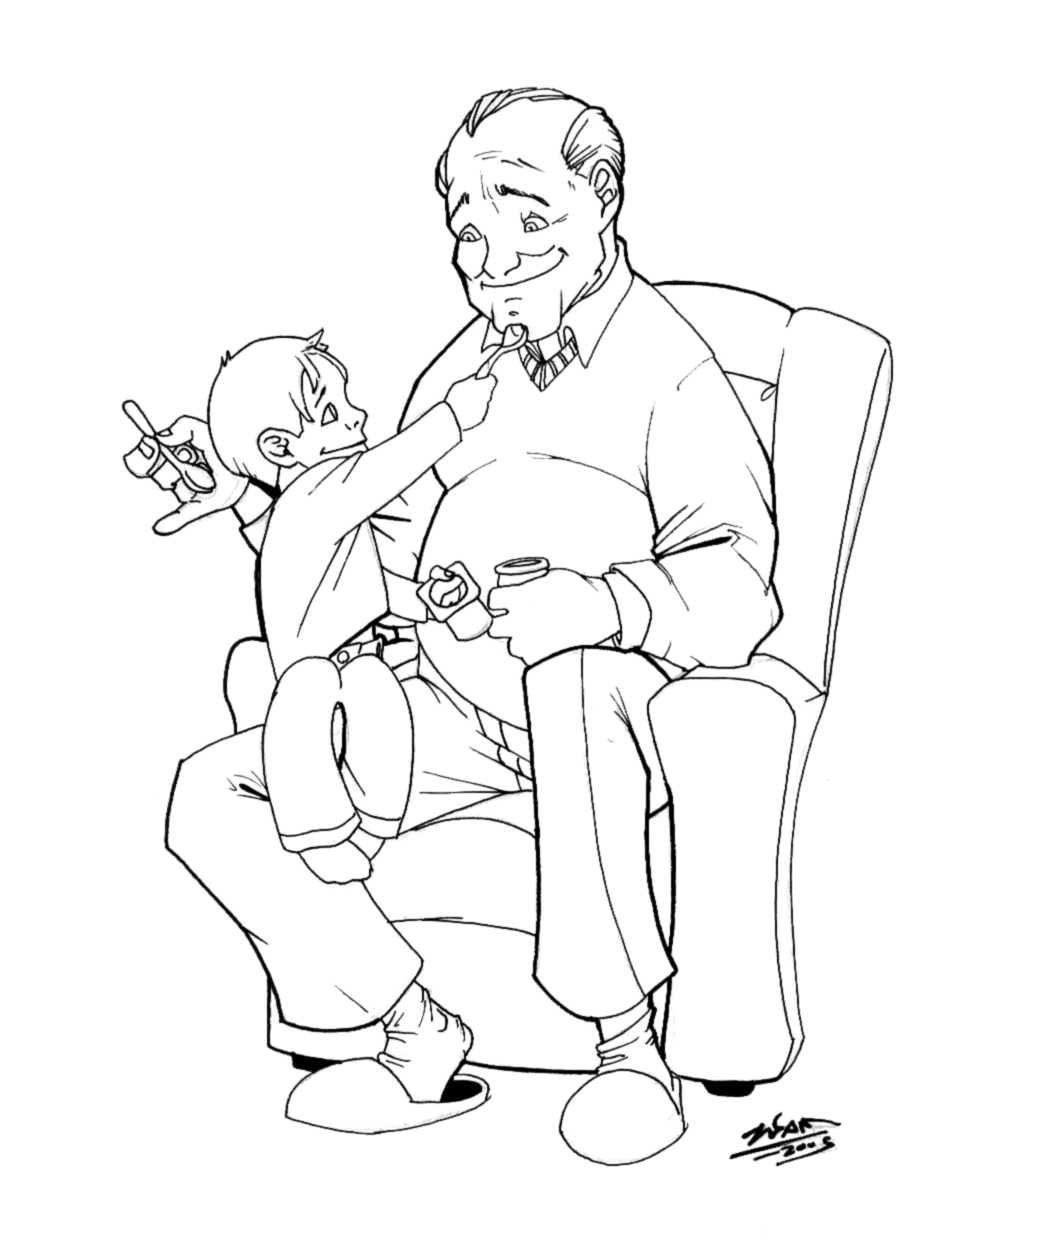 grandpa and grandson ink by thenota on DeviantArt